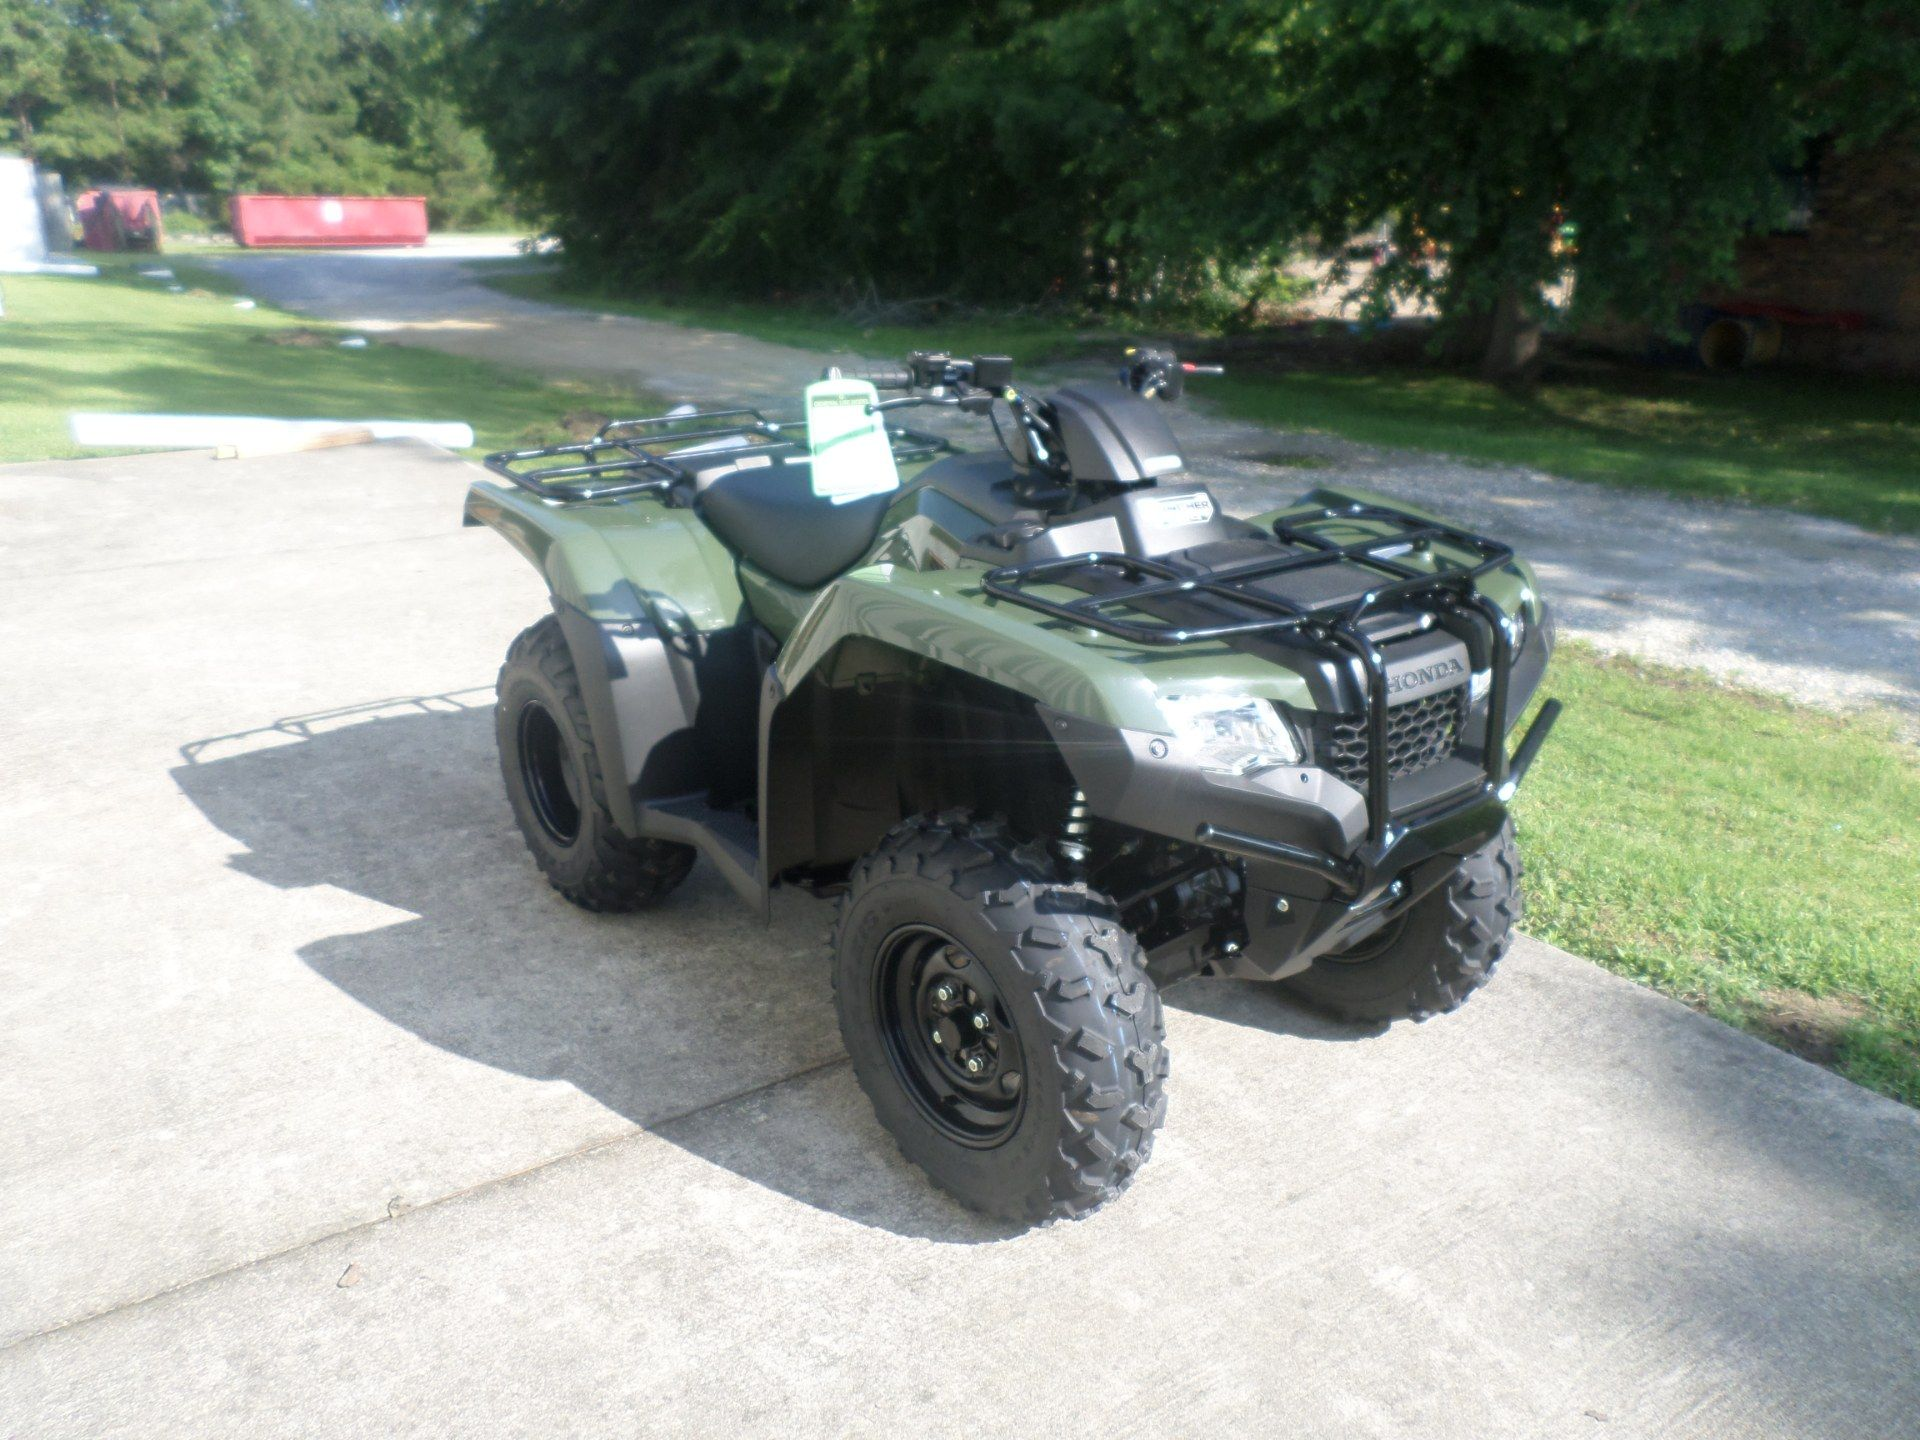 Scooters For Sale Greenville Nc >> 2017 Honda FourTrax Rancher 4x4 ES For Sale Greenville, NC : 11203